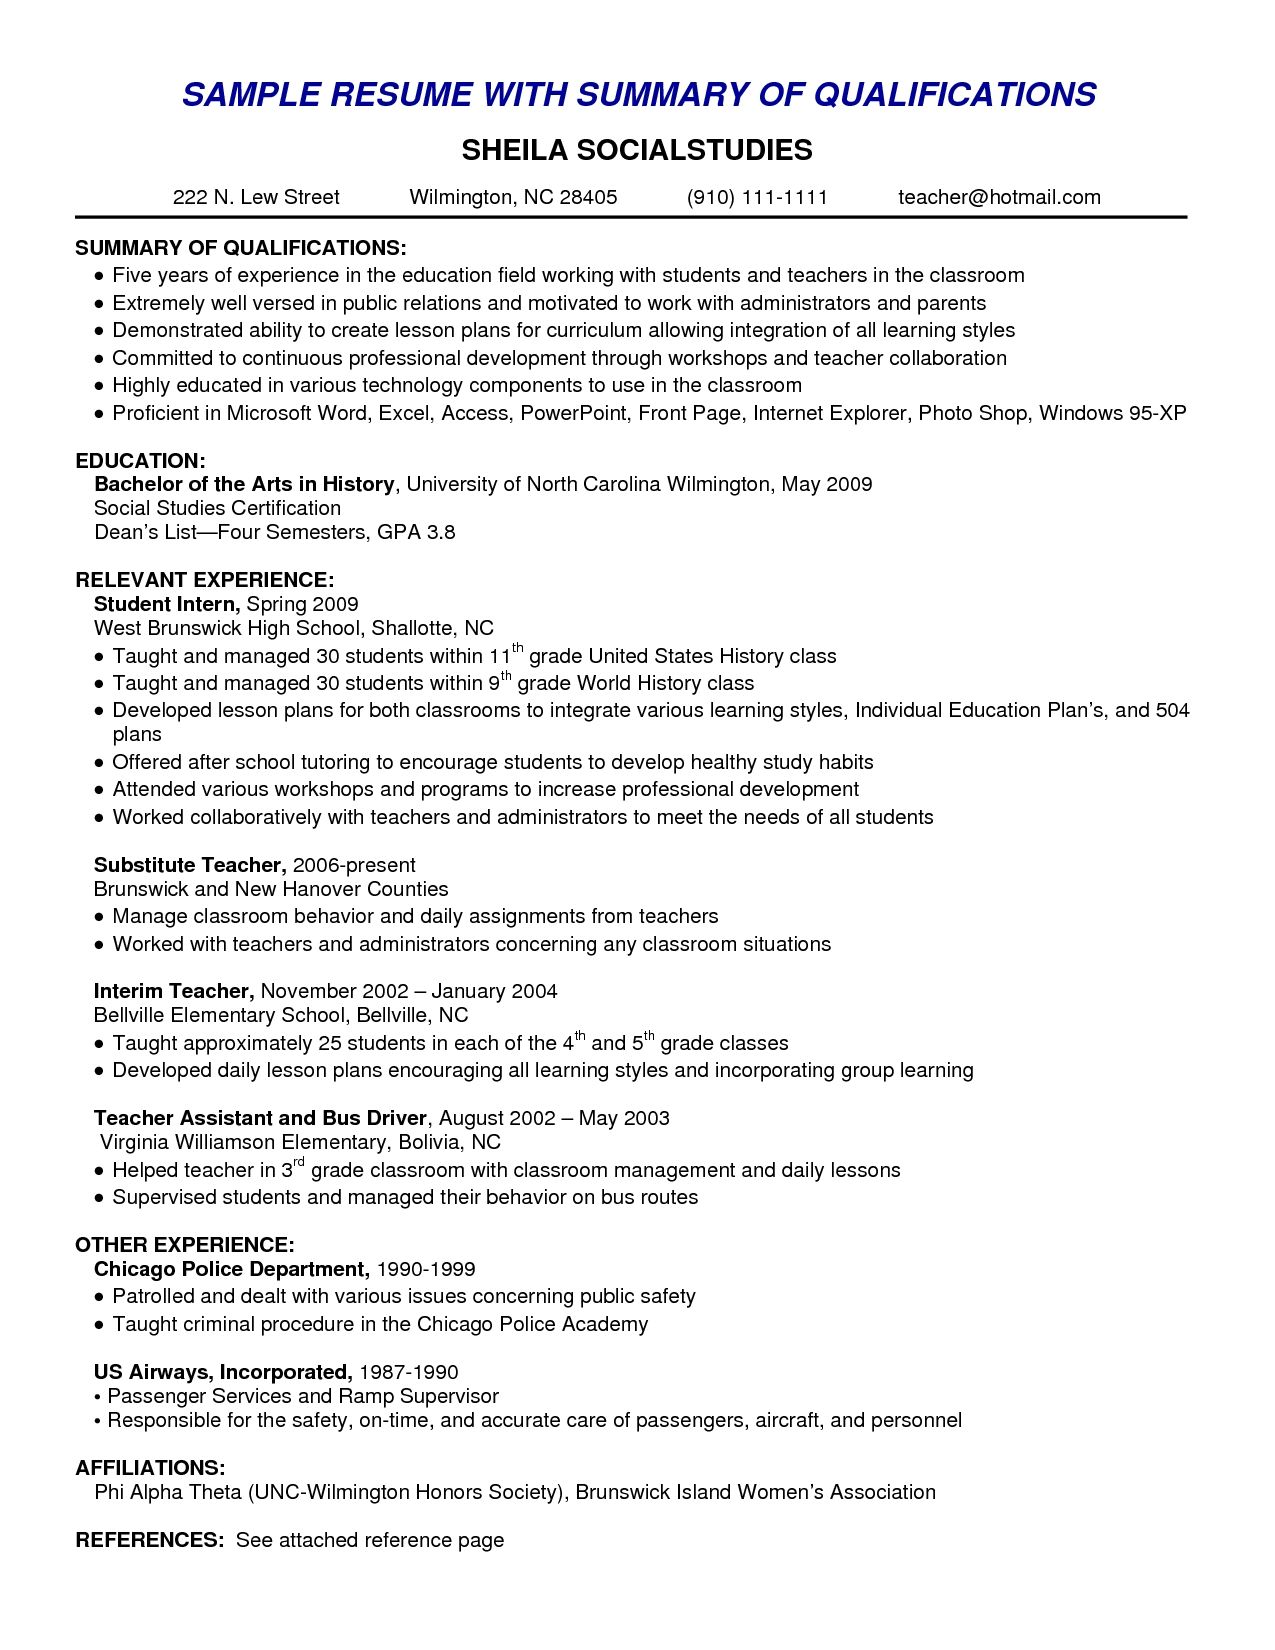 resume How To Write A Good Professional Summary For A Resume resume skills summary examples example of for amusing skills